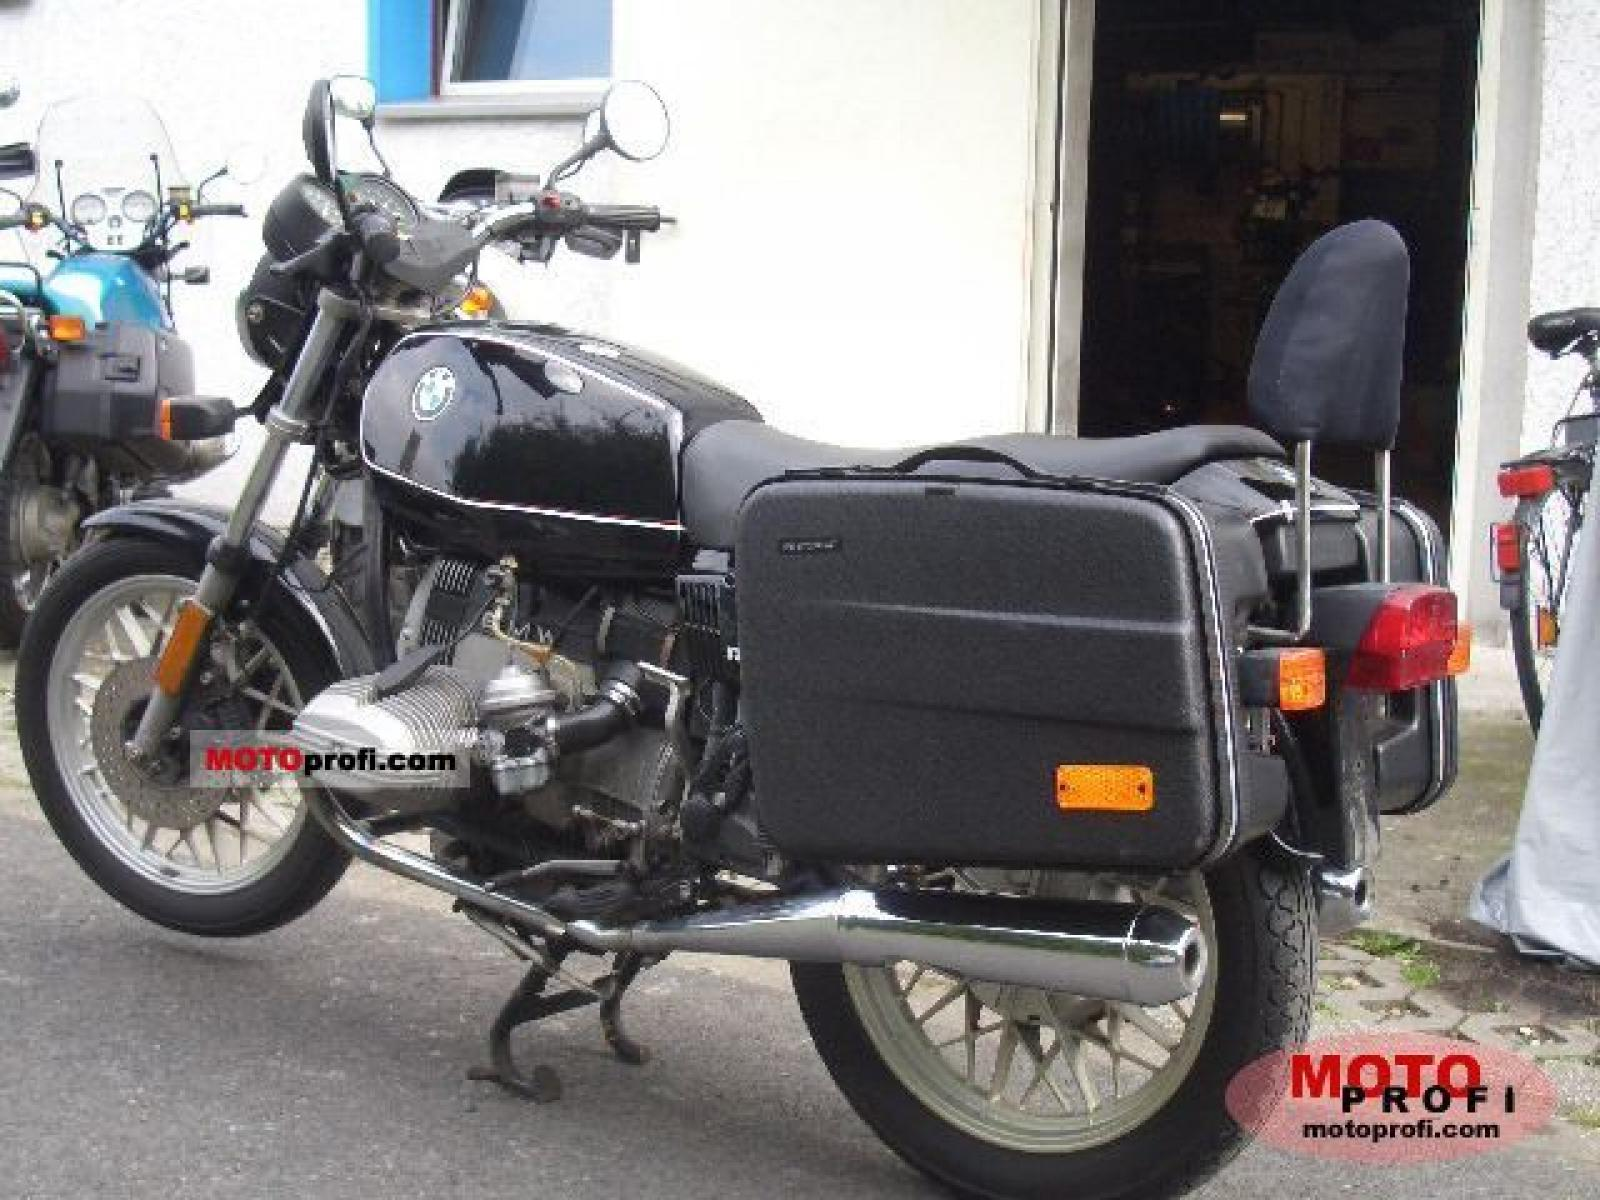 BMW R45 (reduced effect) 1985 images #77160